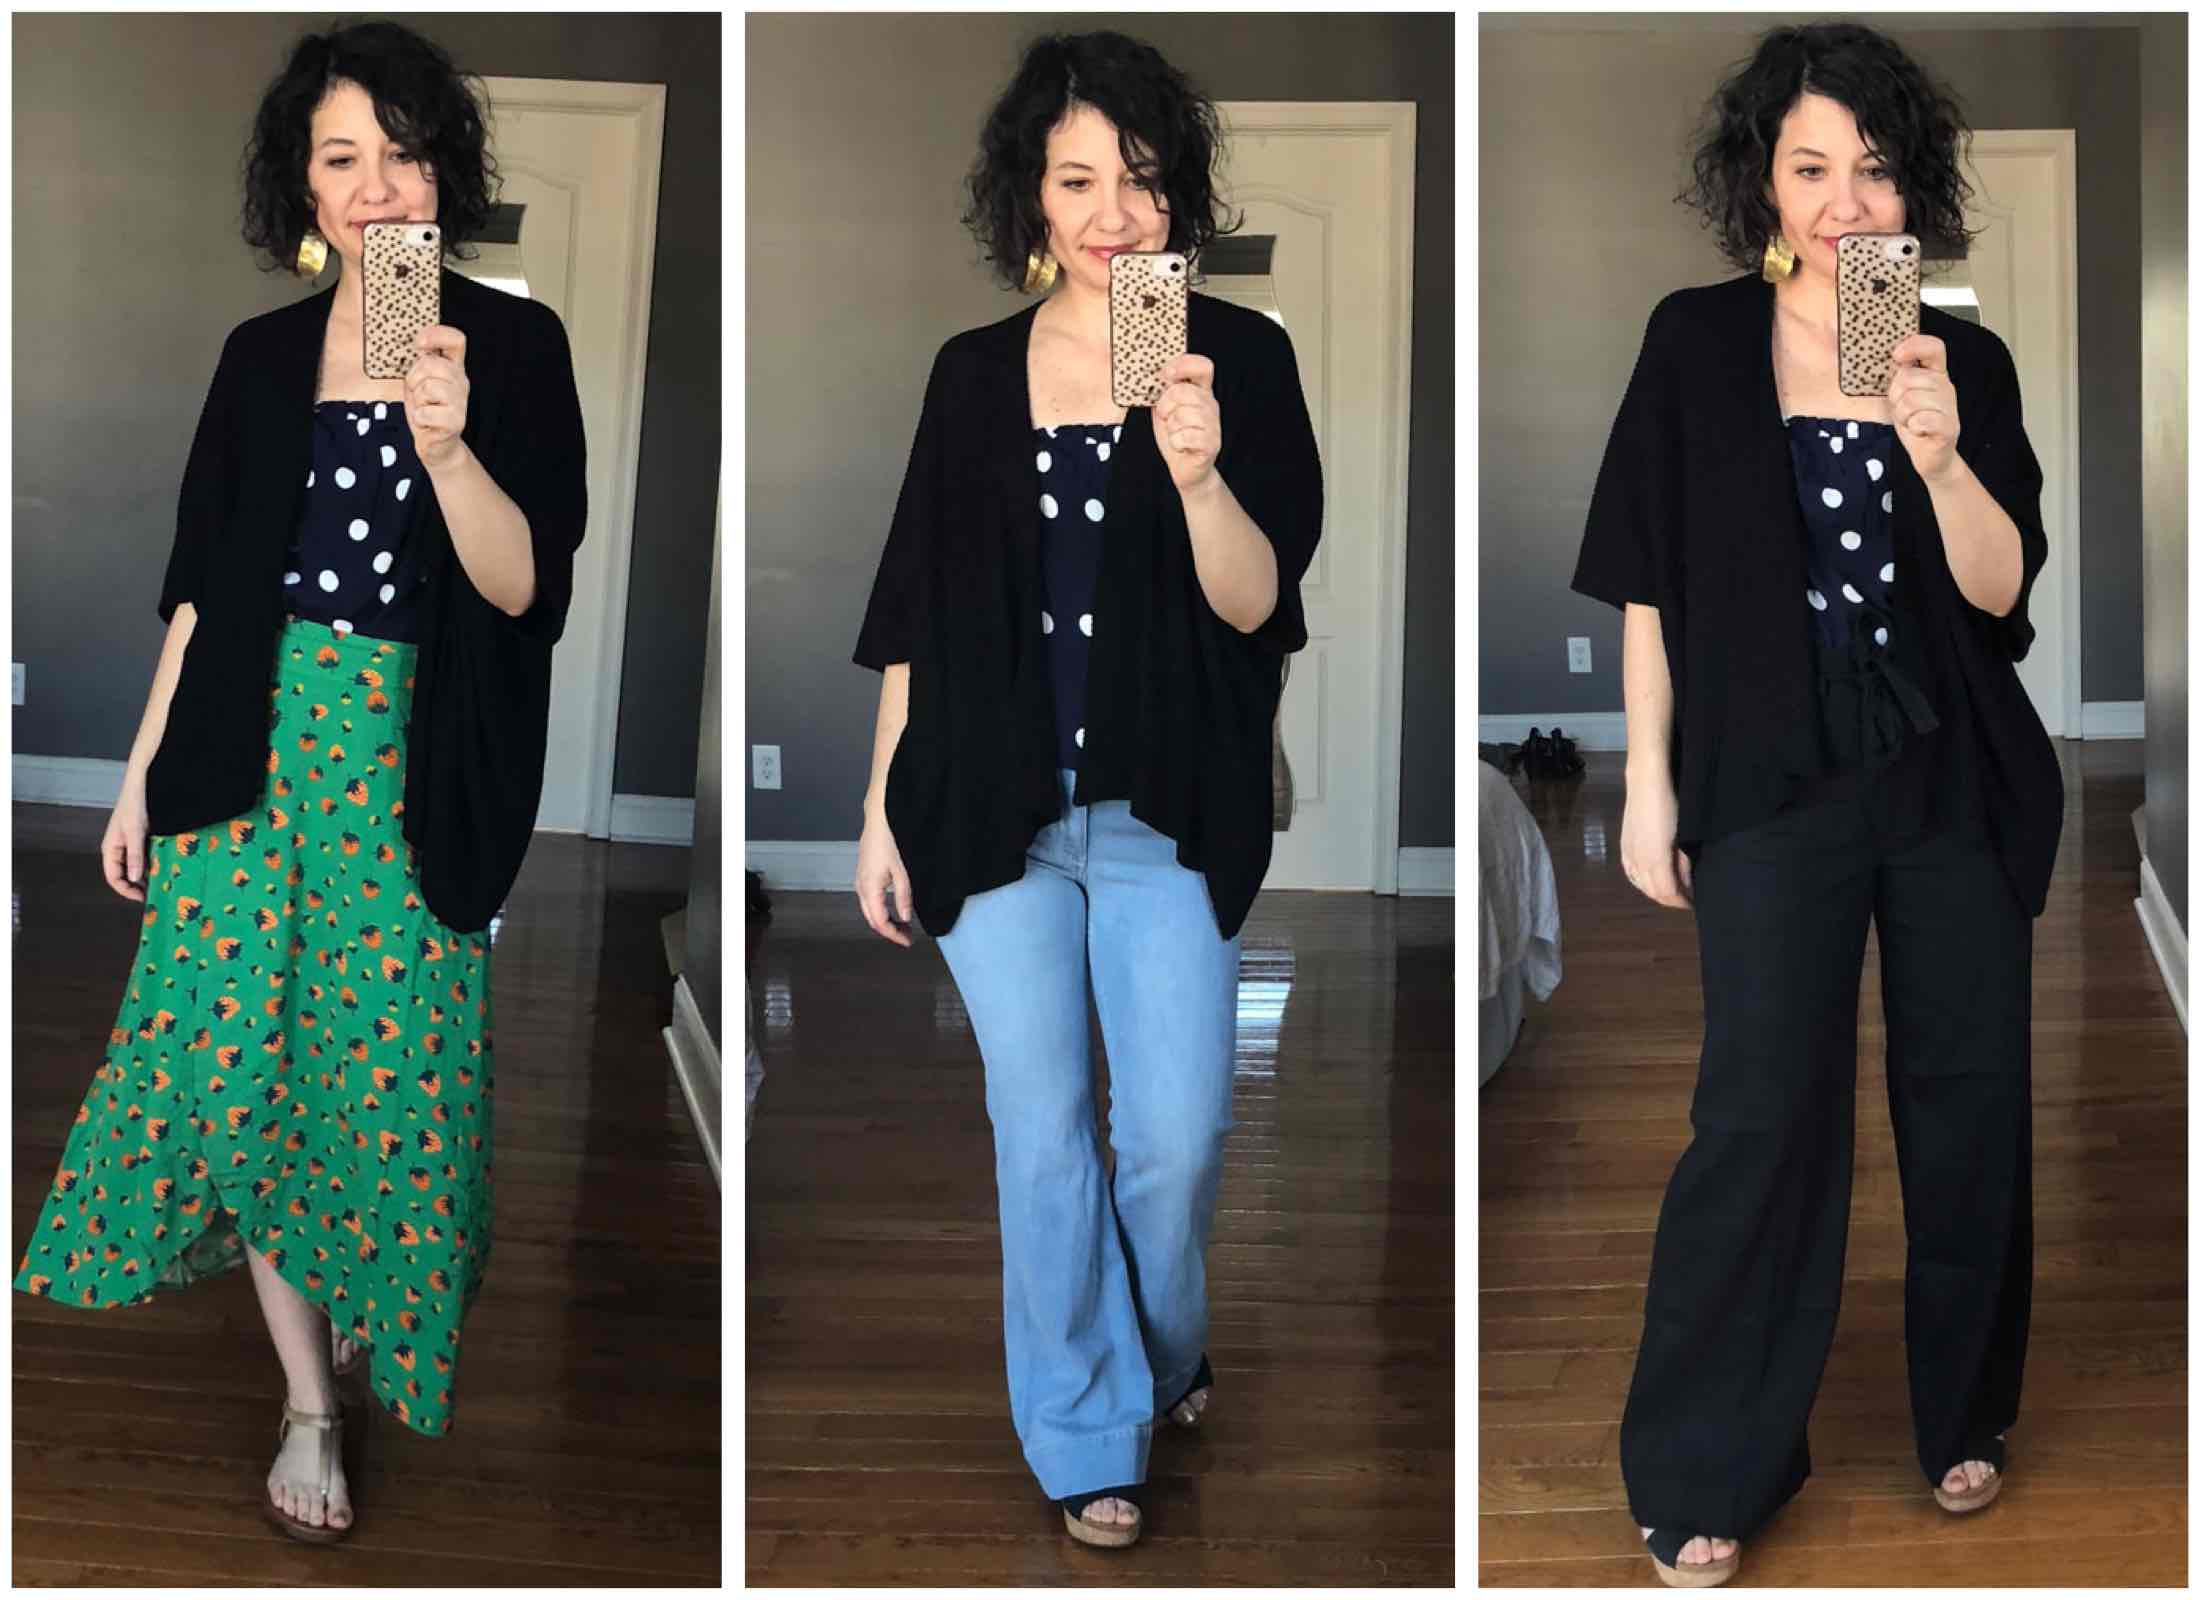 Building a capsule wardrobe for 2019 starts with those pieces in your closet that spark joy — then mix-and-matching to make outfits you LOVE. Here's how.